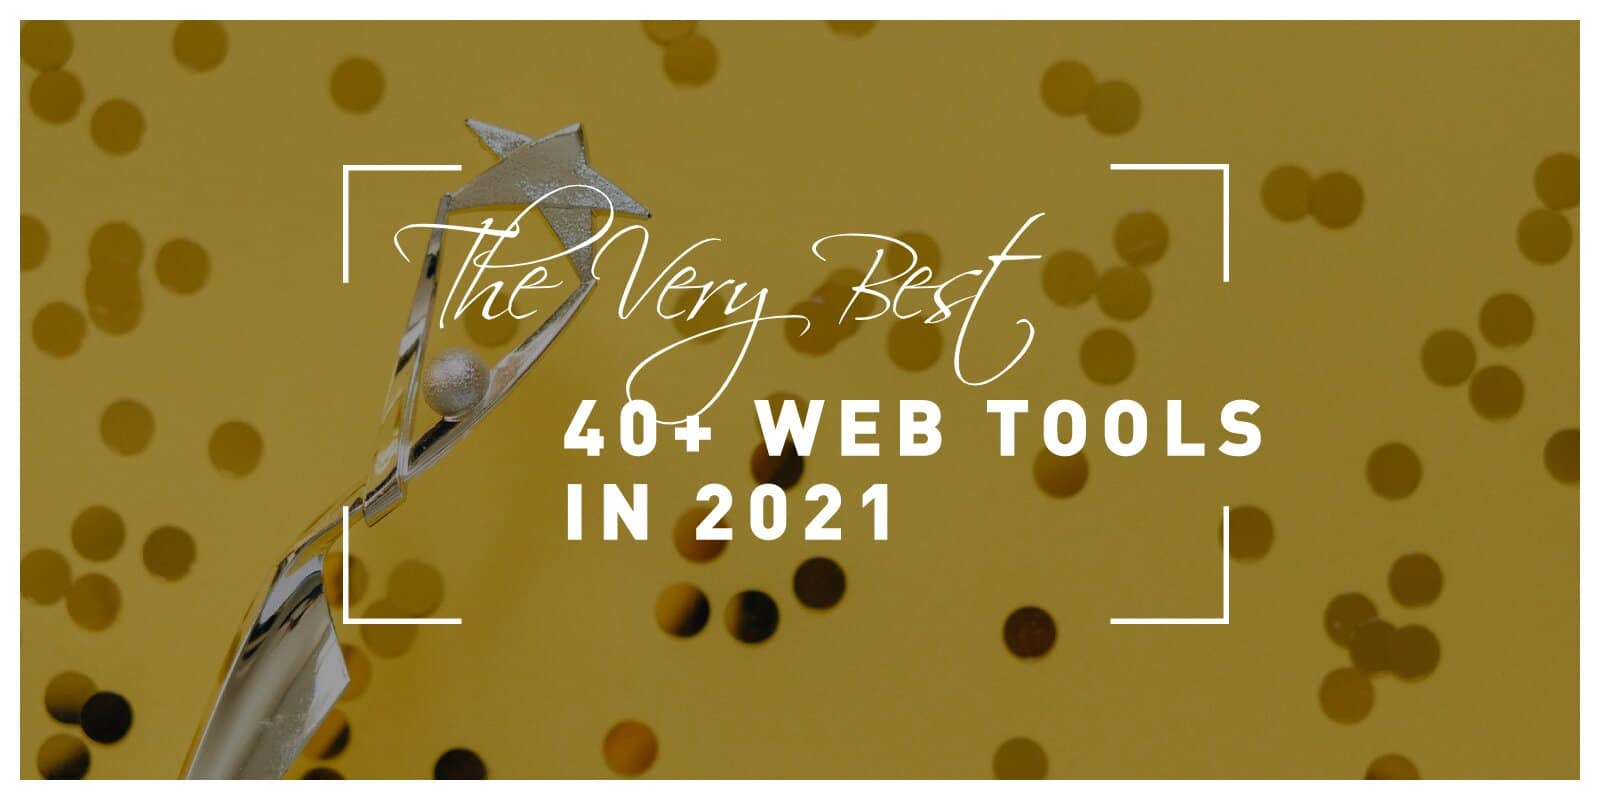 The Very Best 40+ Web Tools in 2021